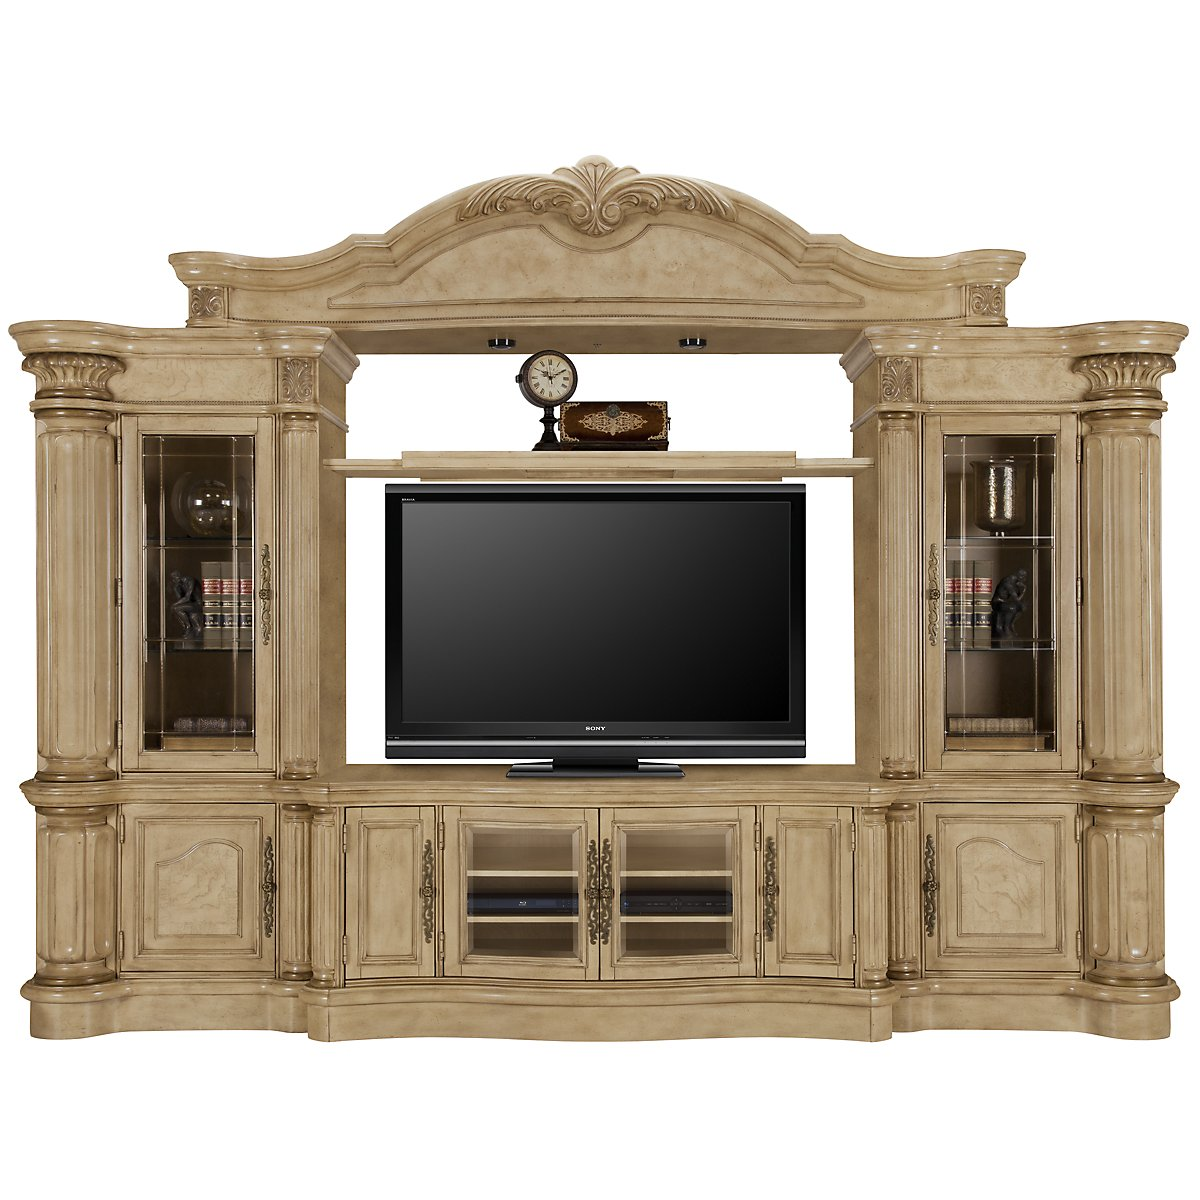 Regal3 Light Tone Large Entertainment Wall